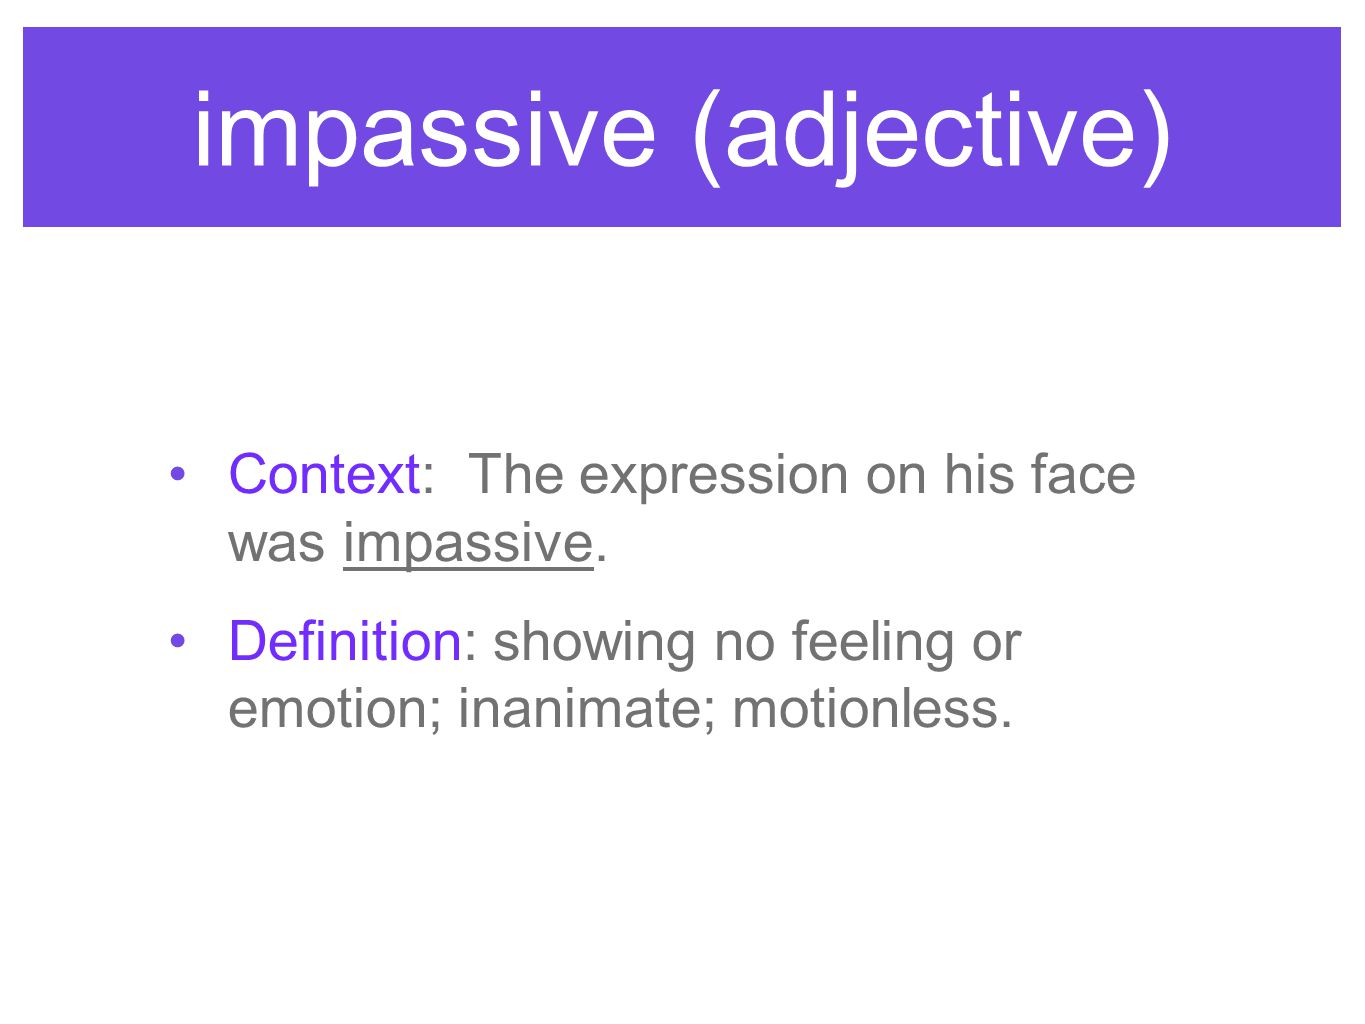 obstinate (adjective) Context: The obstinate boy refused to clean his room. Definition: Stubborn